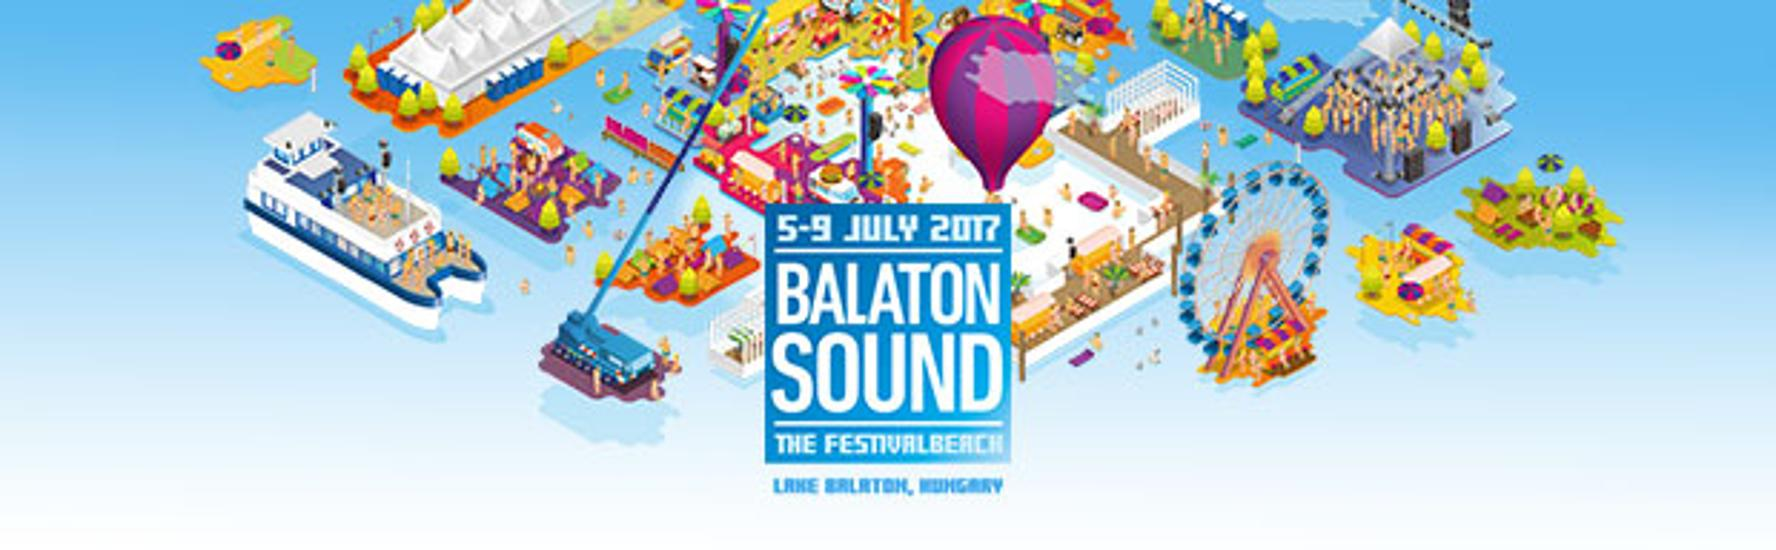 Now On Until 9 July: Balaton Sound Festival, Zamárdi